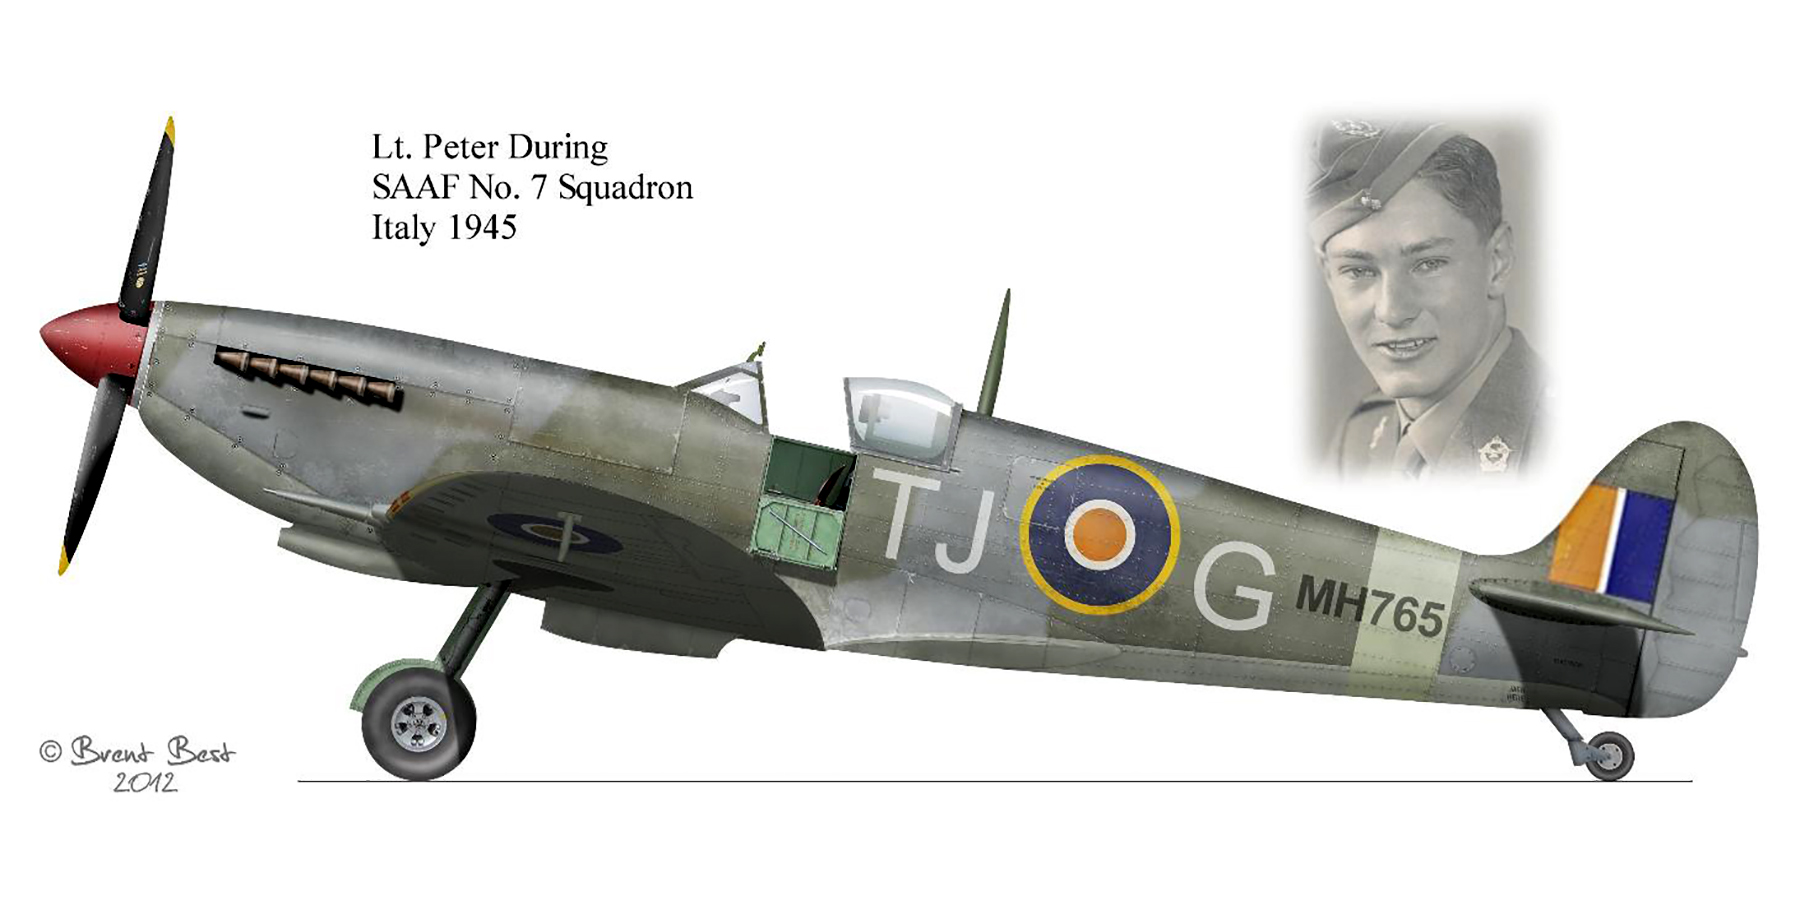 Spitfire MkIX SAAF 7Sqn TJG Peter During MH765 Italy 1945 0A